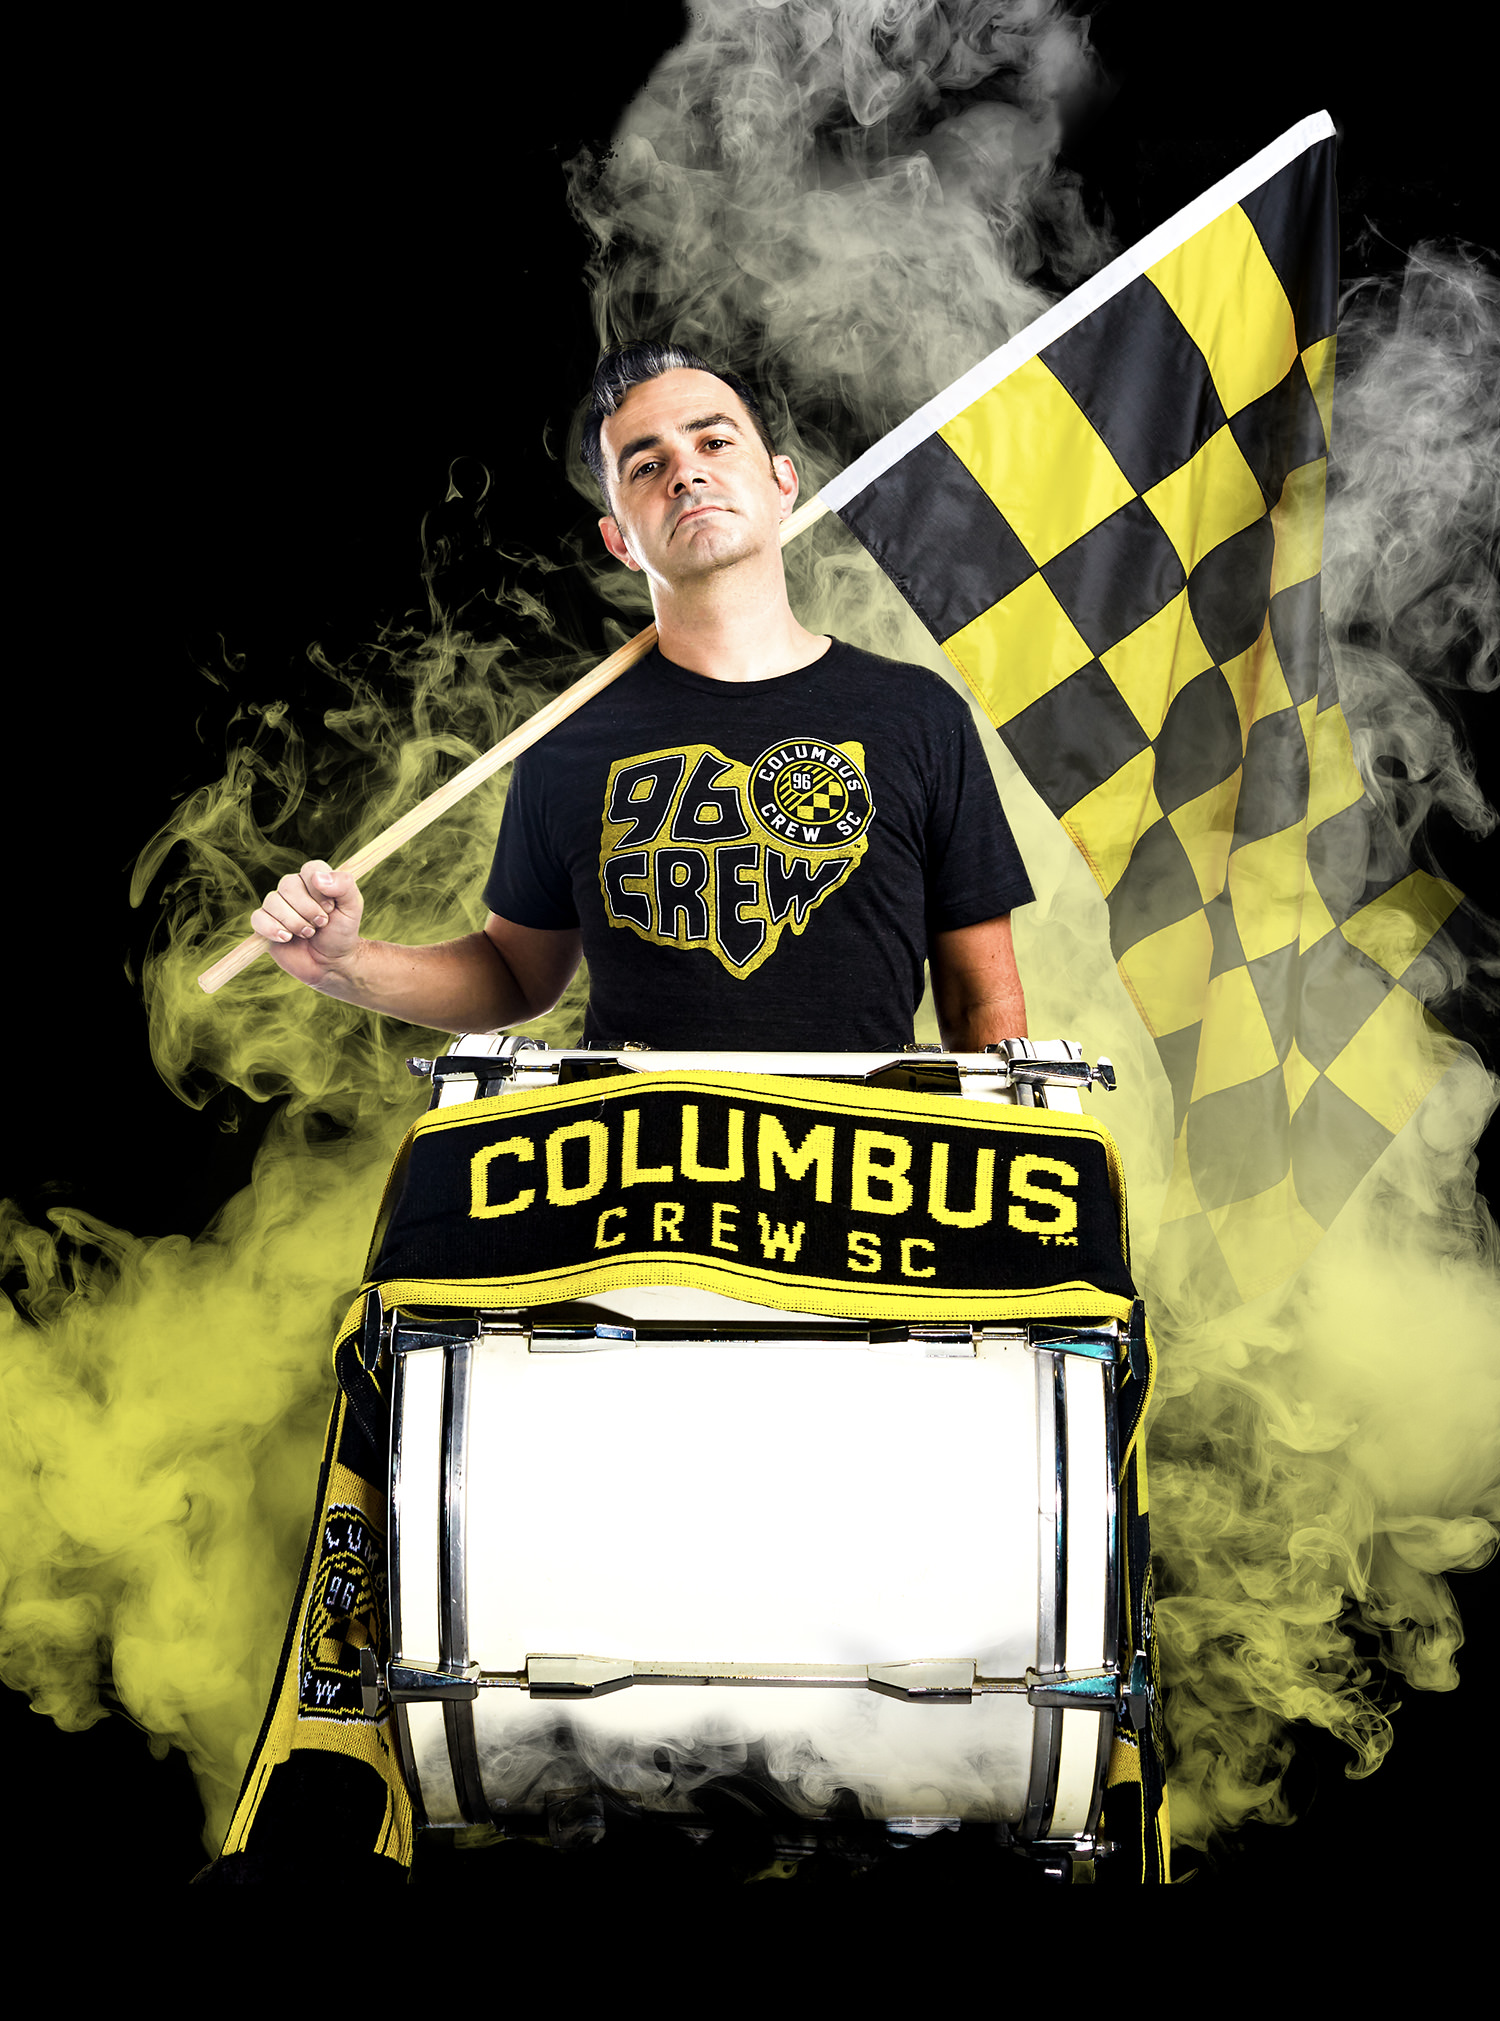 mls-live-the-colors-columbus-crew.jpg